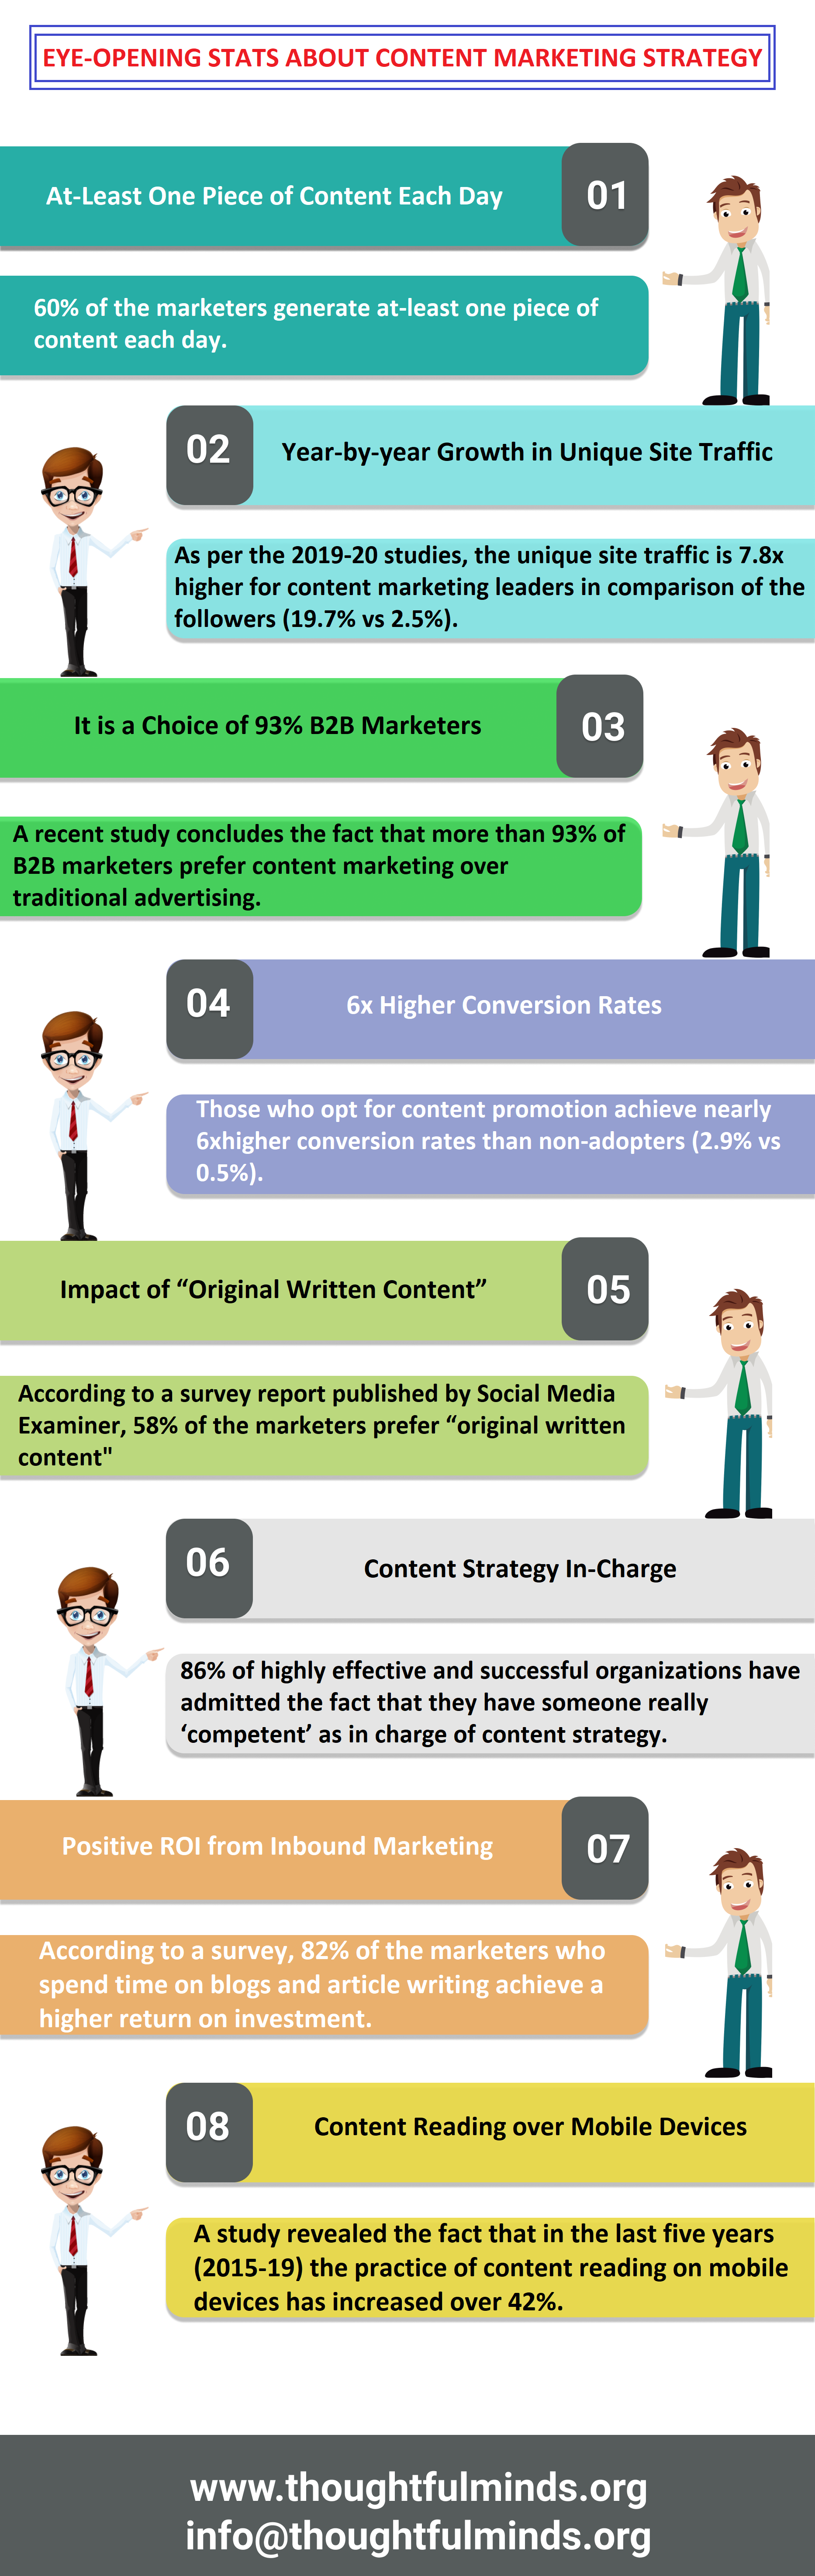 Infographic On Content Marketing Strategy Stats - ThoughtfulMinds